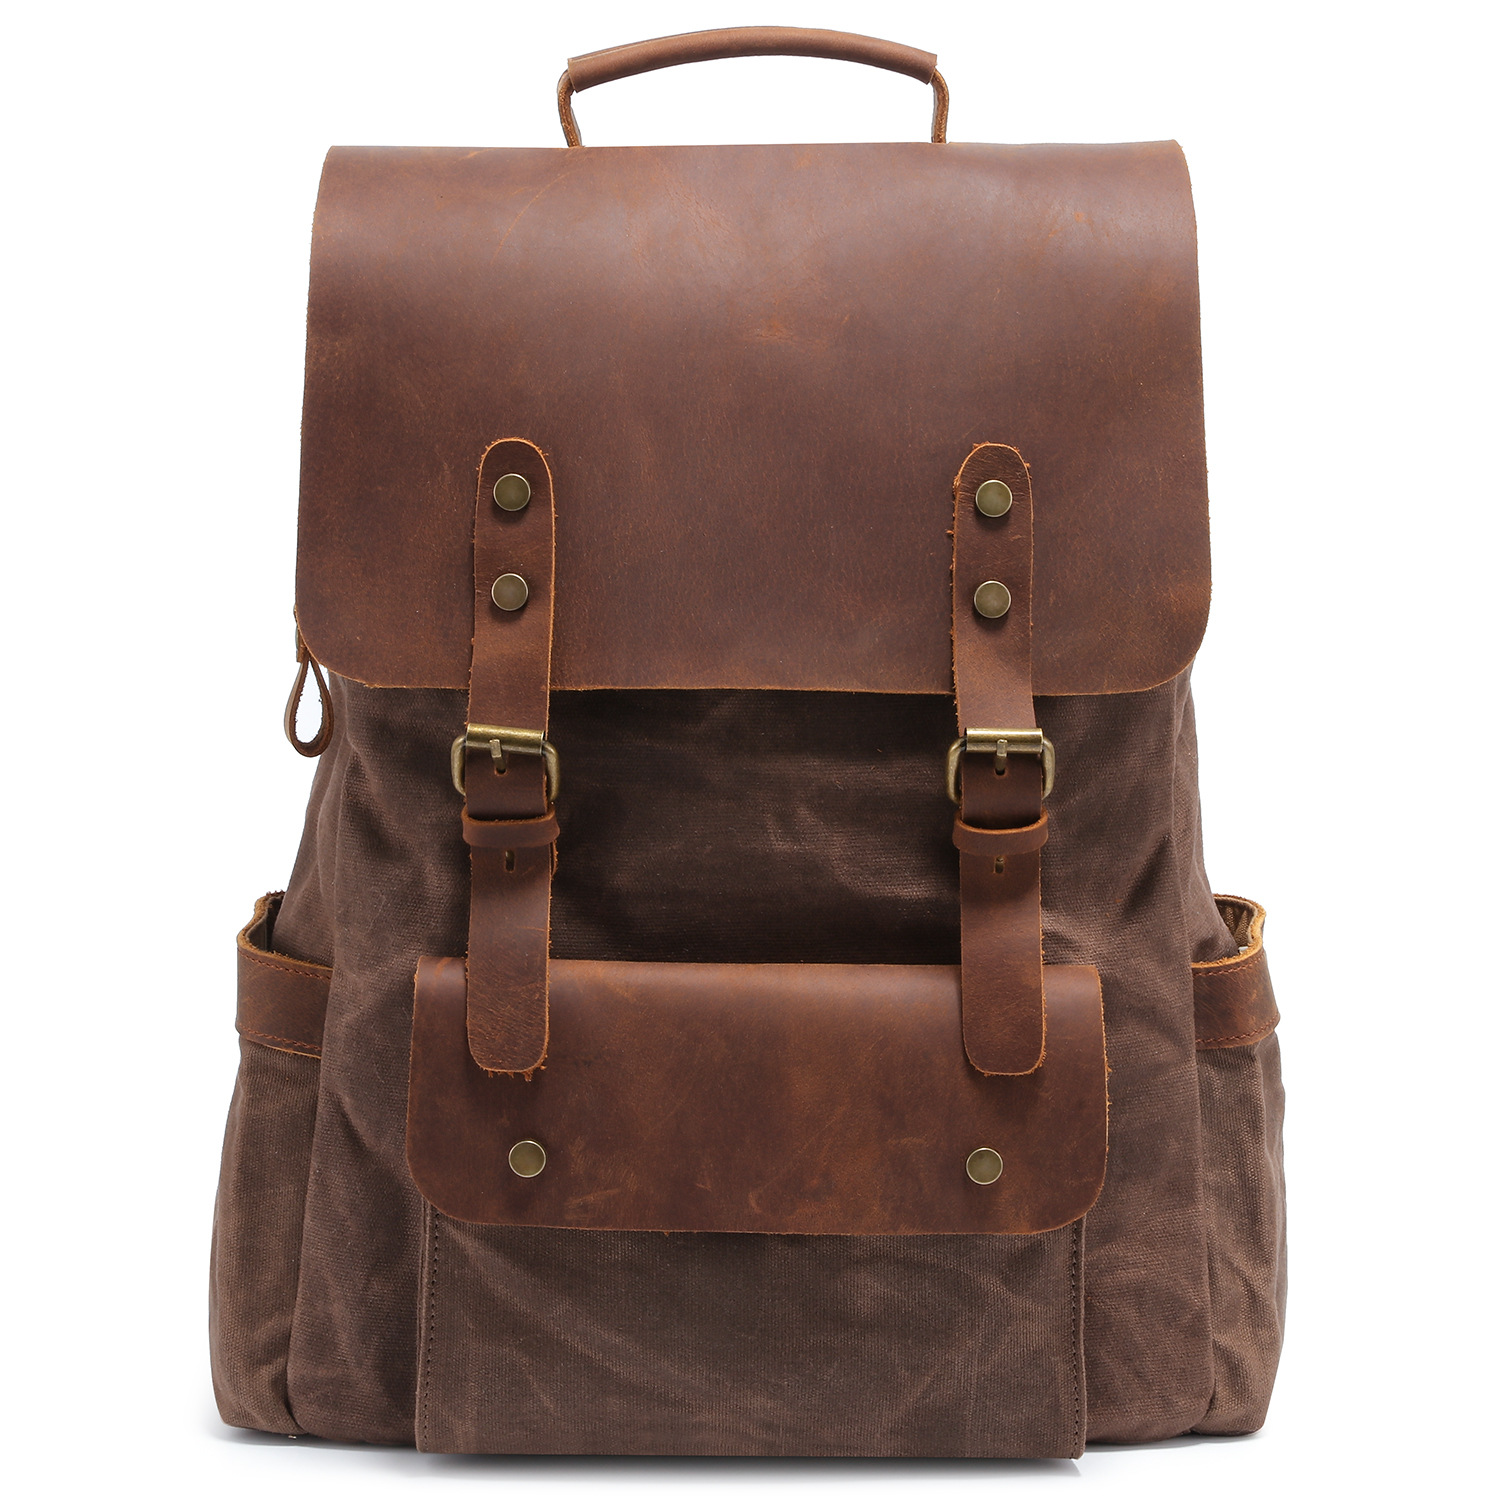 Cross Border Hot Selling College Style School Bag Casual Travel Men's Bag Retro Horse Leather with Canvas Backpack Customizable